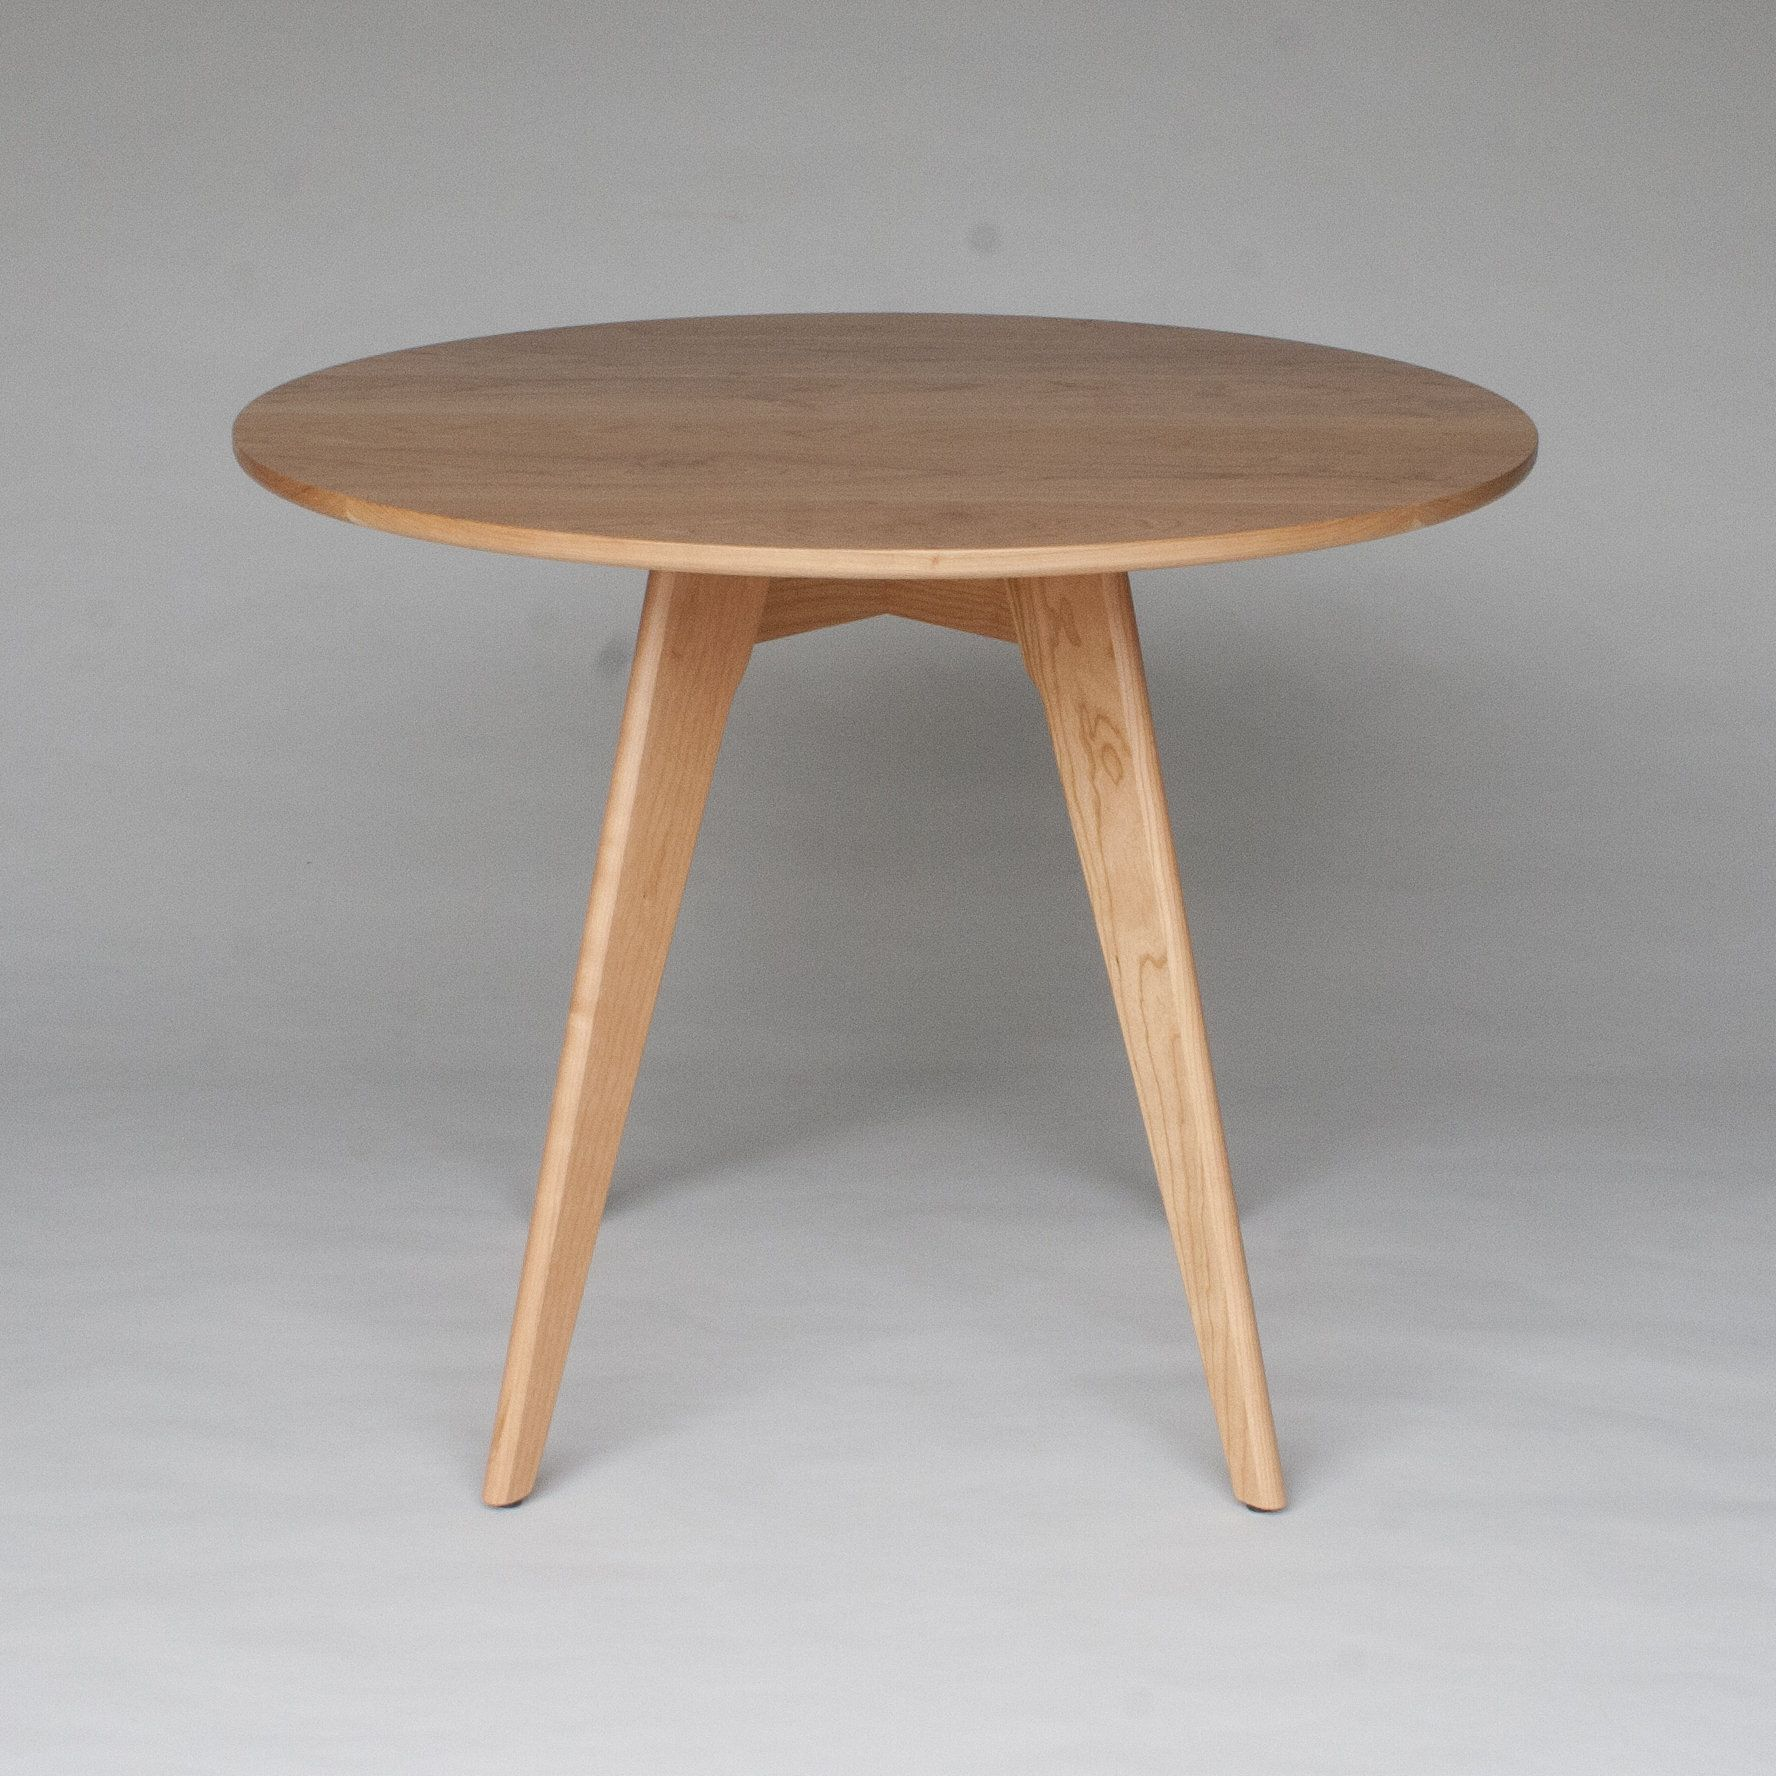 Small Round Dining Table In Solid Natural Cherry Wood Round Dining Table Round Dining Table Modern Mid Century Dining Table